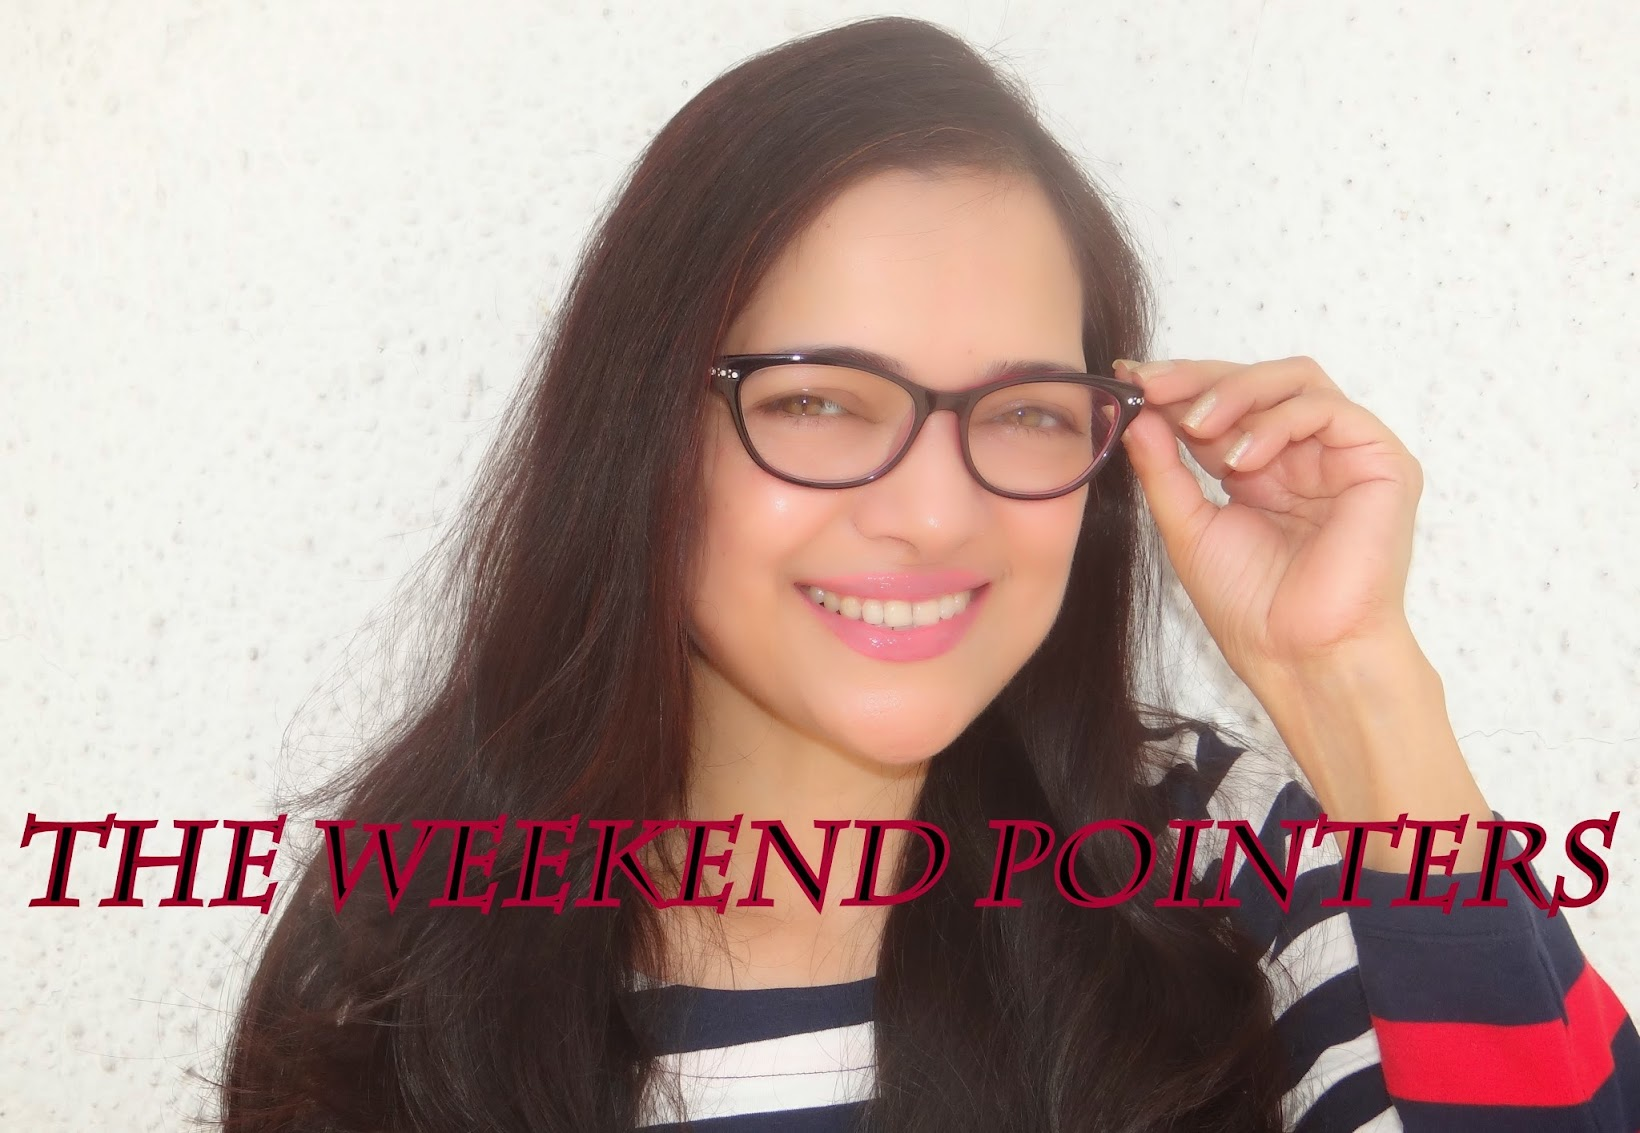 The Weekend Pointers-Part 1, Lighten and Brighten your skin in a month